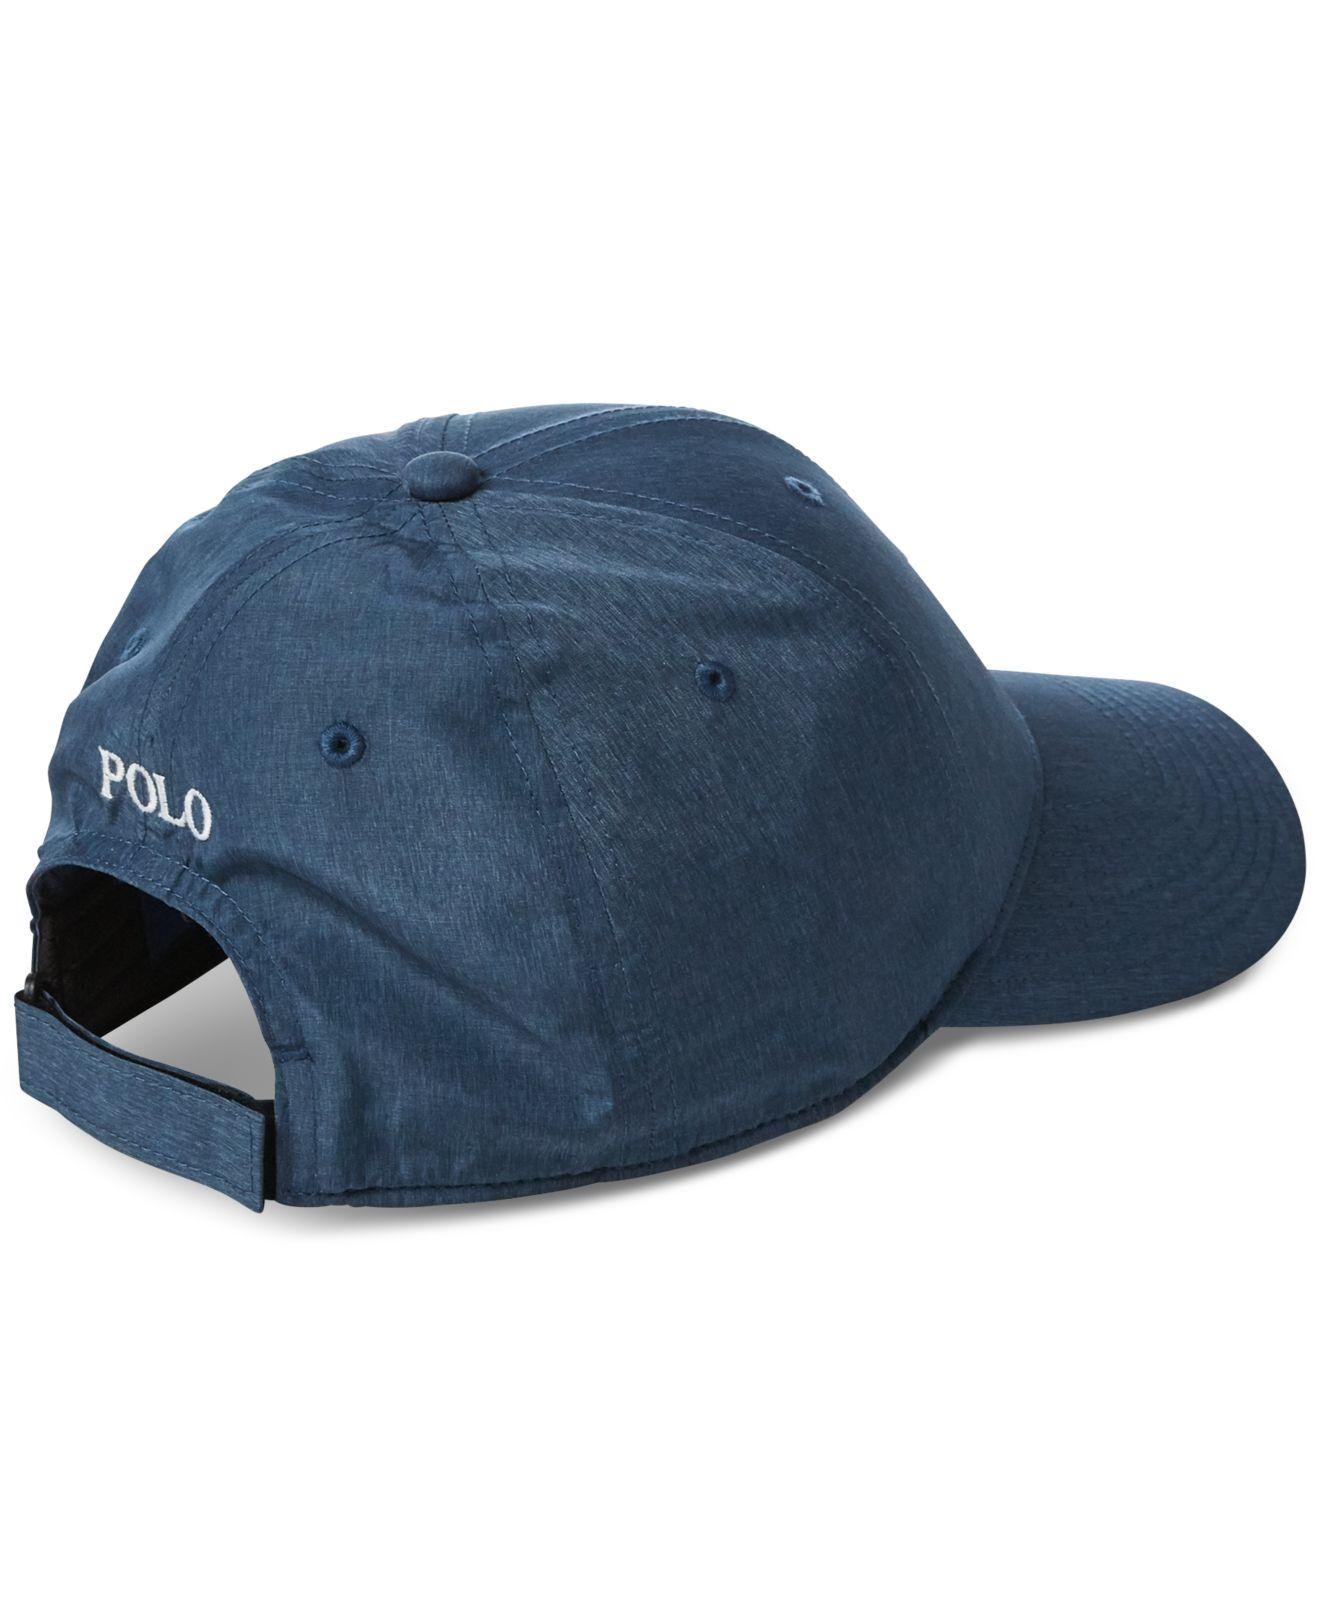 e274d958 Lyst - Polo Ralph Lauren Performance Cap in Blue for Men